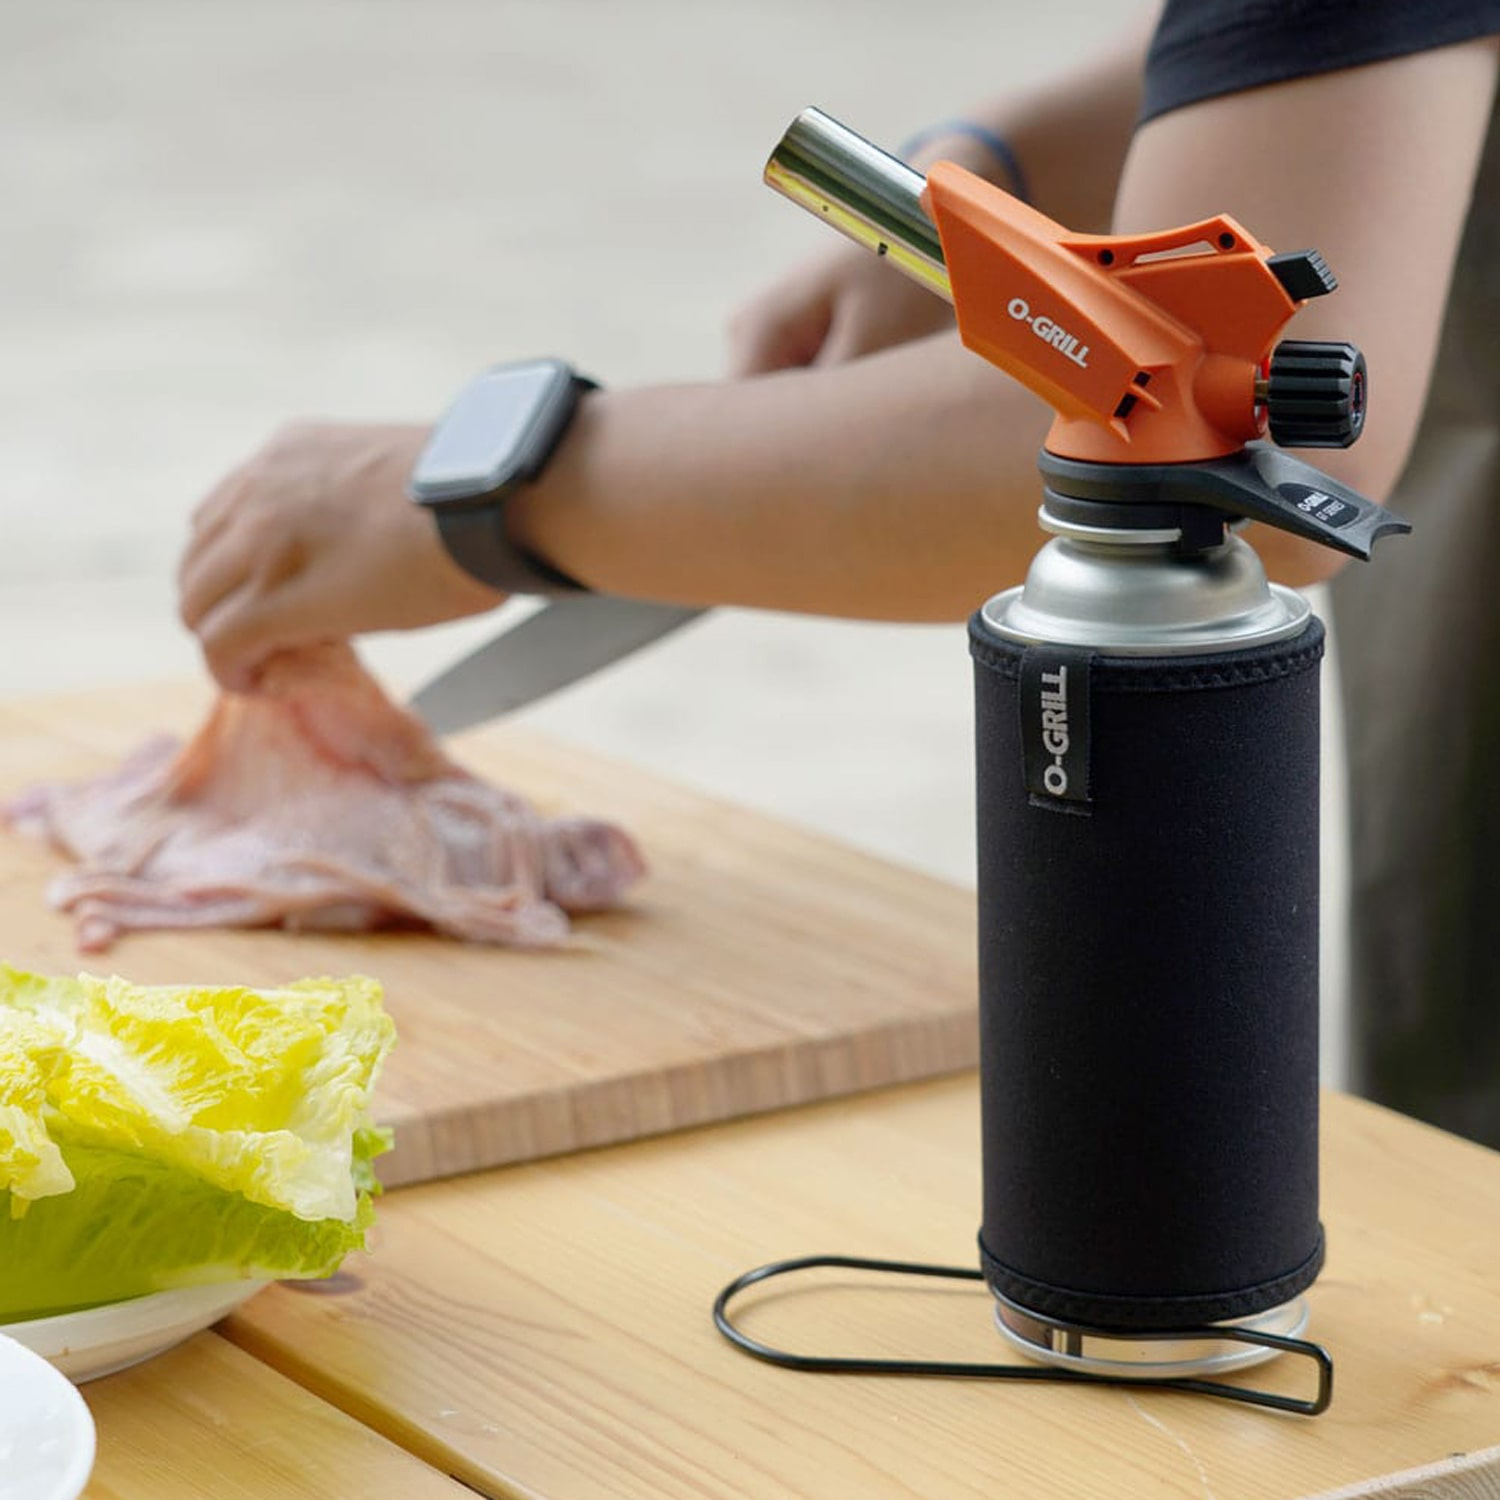 O-Grill Portable Gas Grill Accessories Feature Image